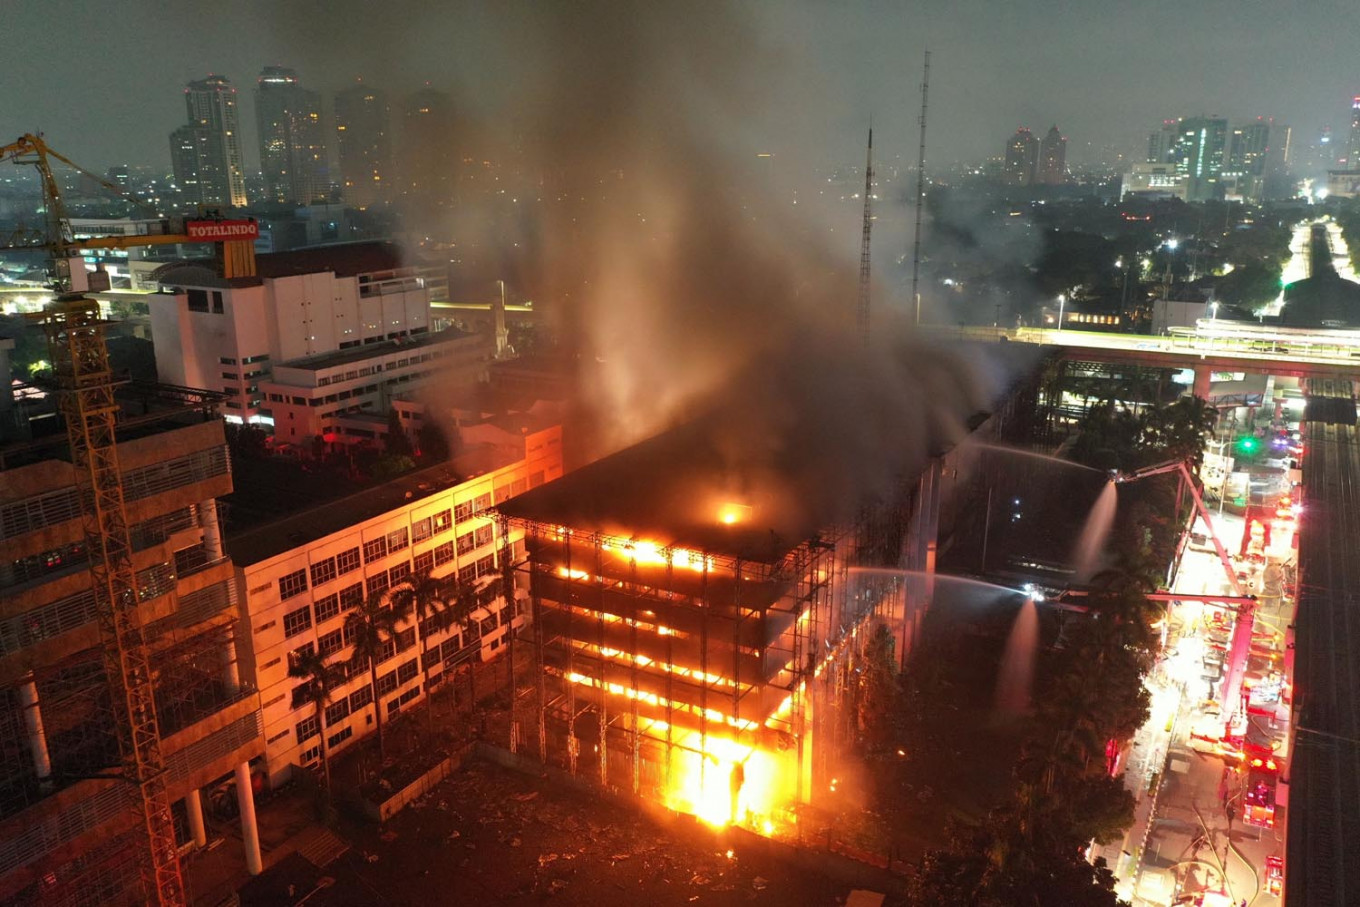 AGO proposes Rp 400 billion budget to renovate burned building